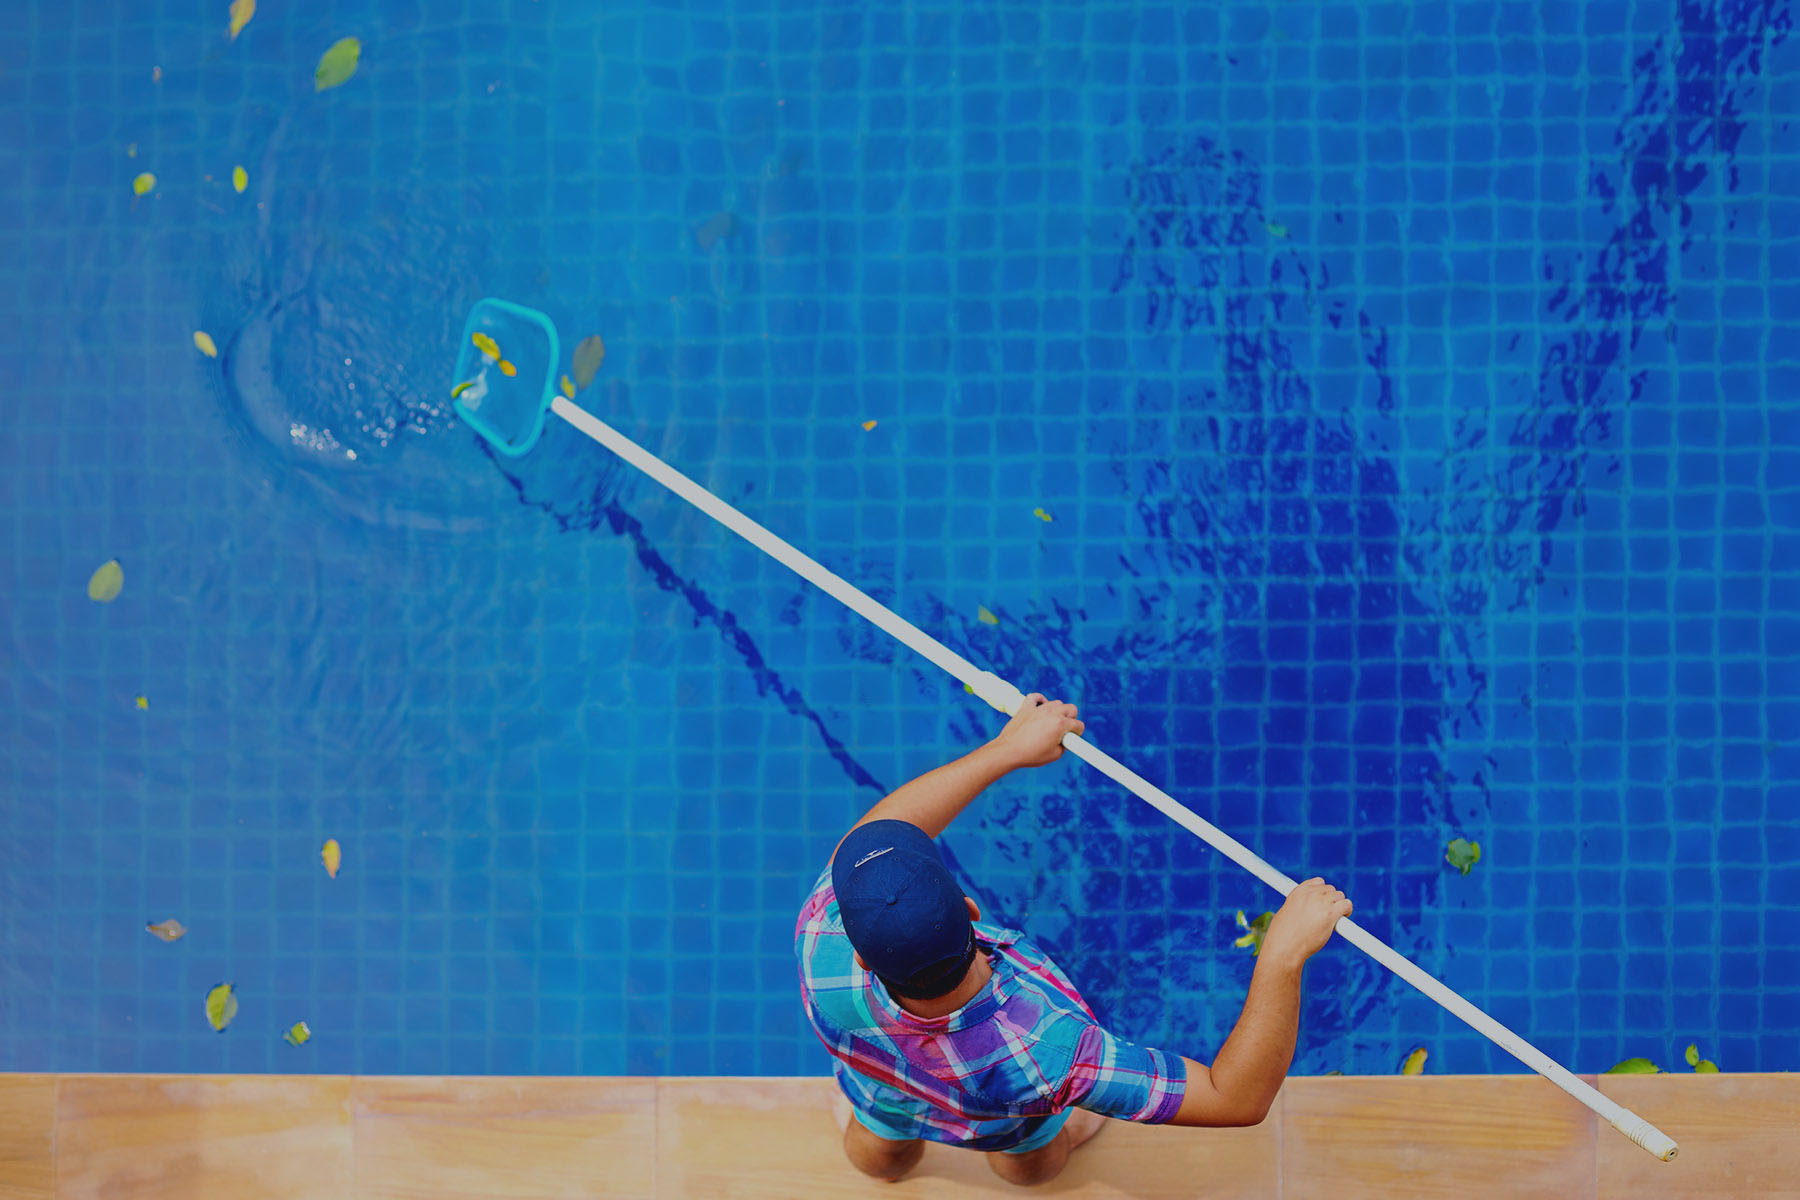 A major chlorine shortage is set to spoil summertime fun in the swimming pool